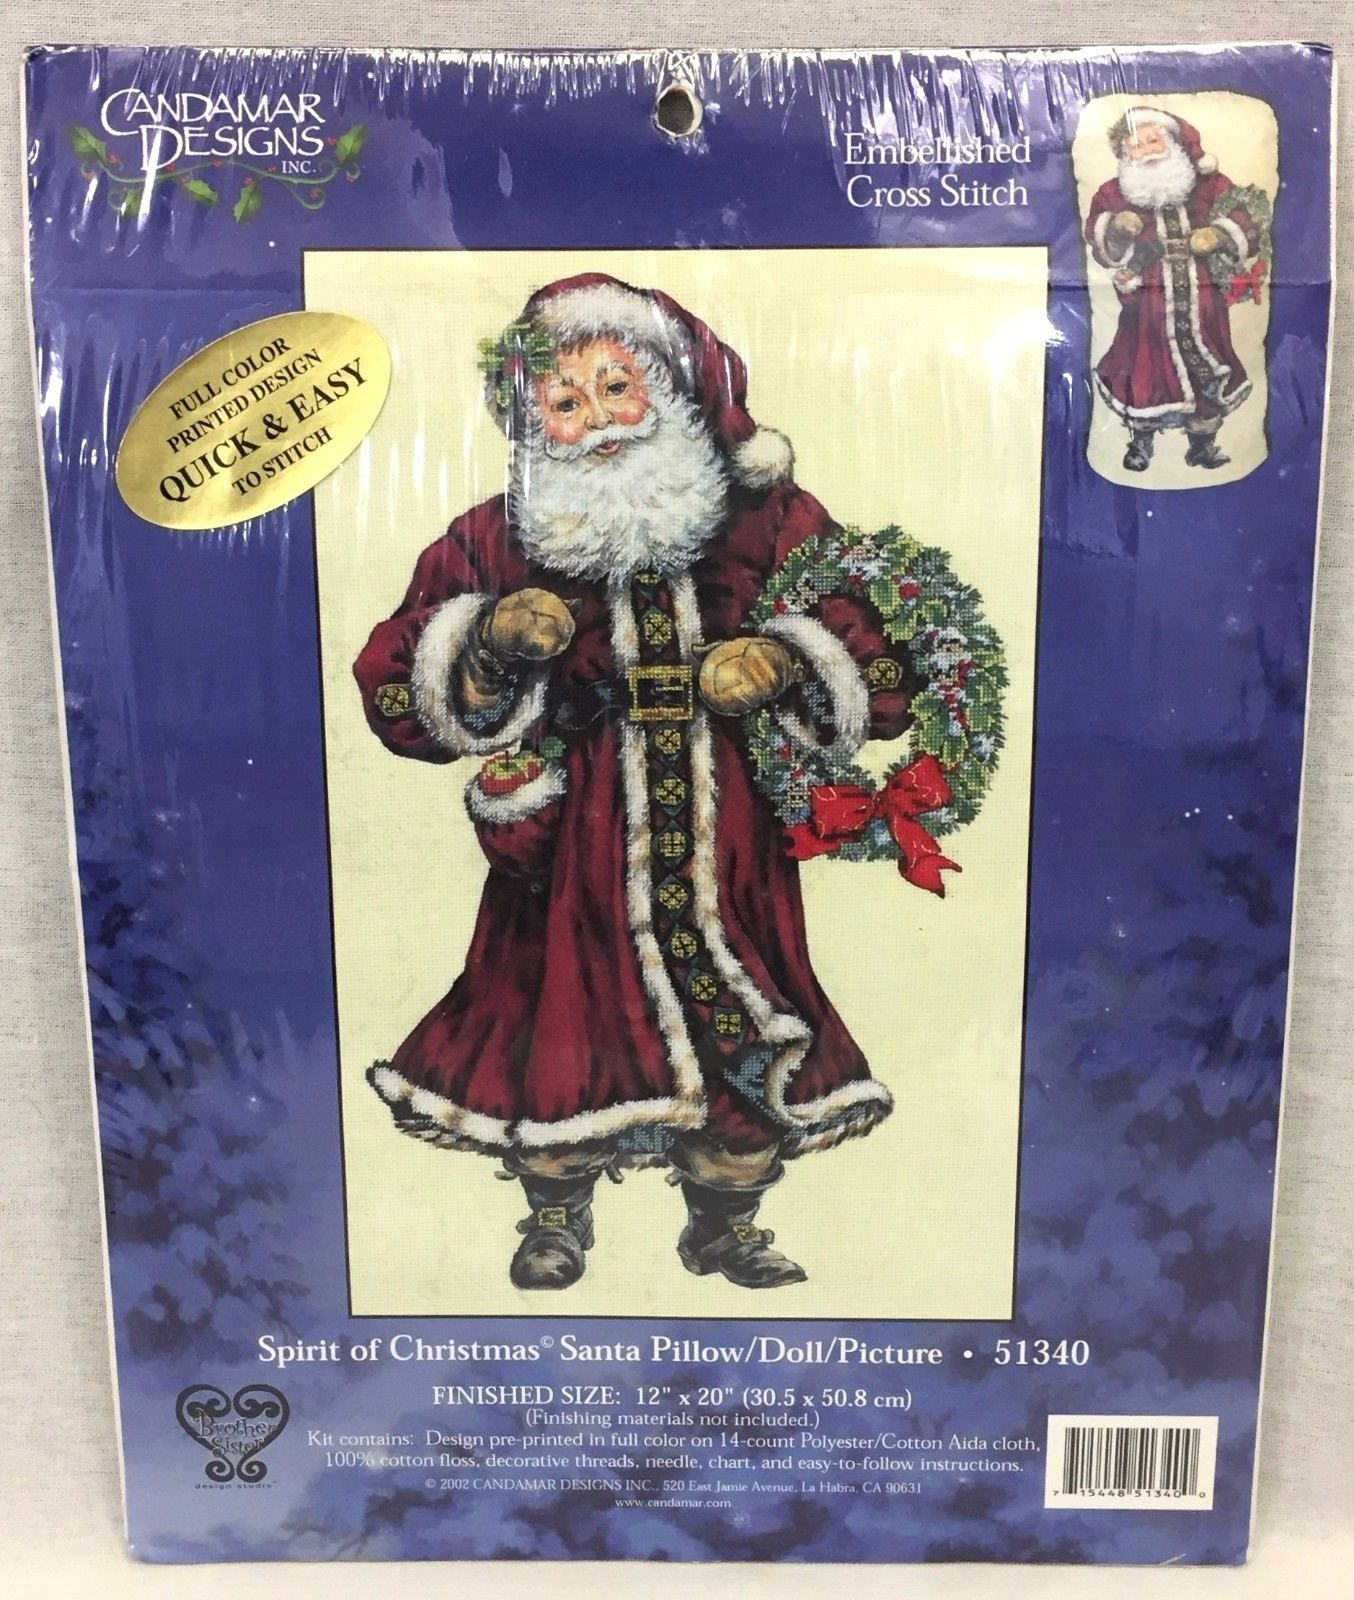 Primary image for Candamar Designs Spirit Of Christmas Santa Pillow Picture Cross Stitch Kit 51340